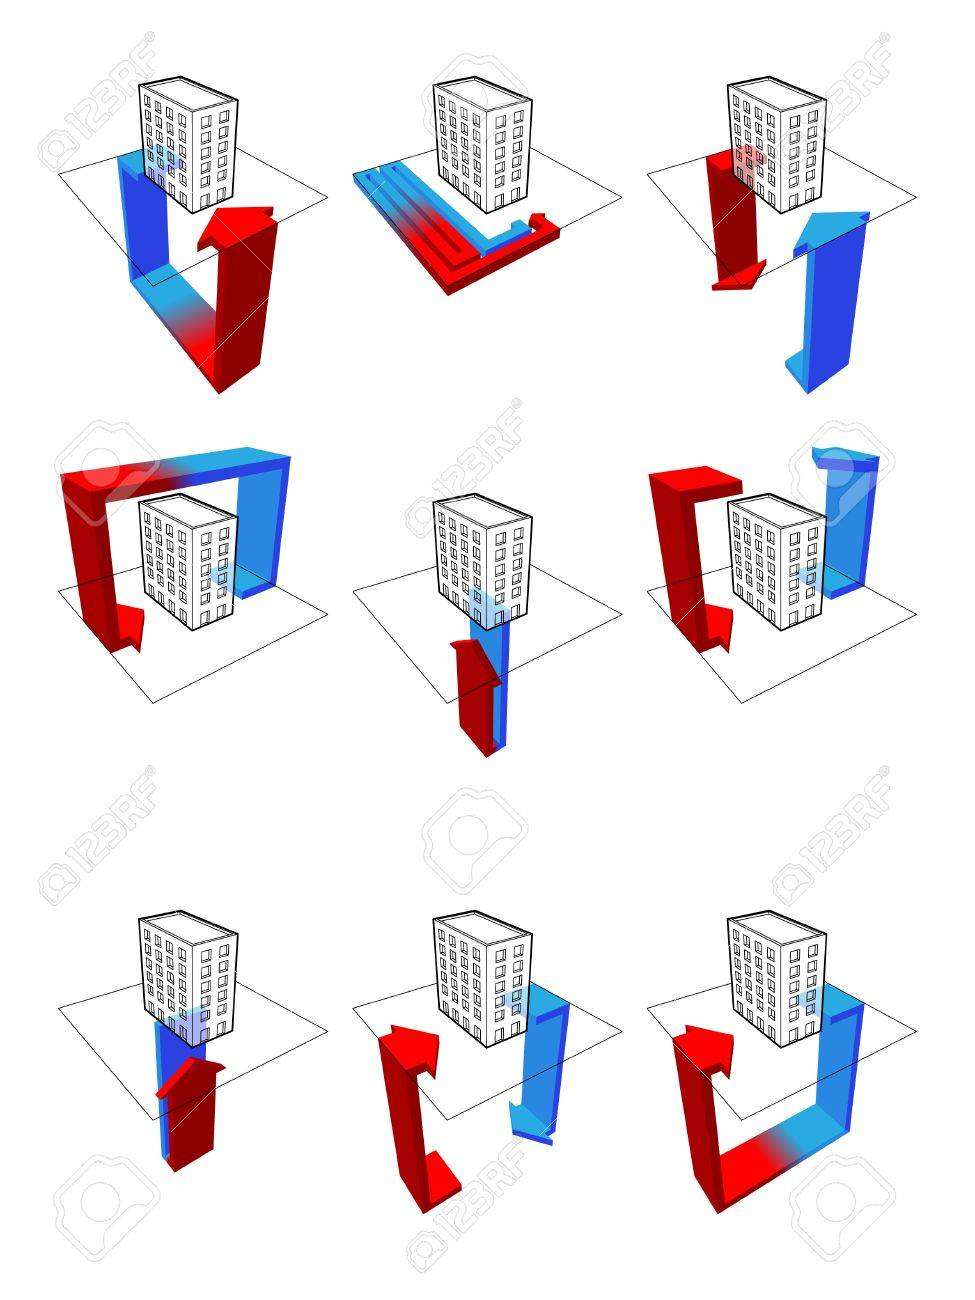 medium resolution of collection of nine heat pump diagrams on example of a apartment house showing possibilities of